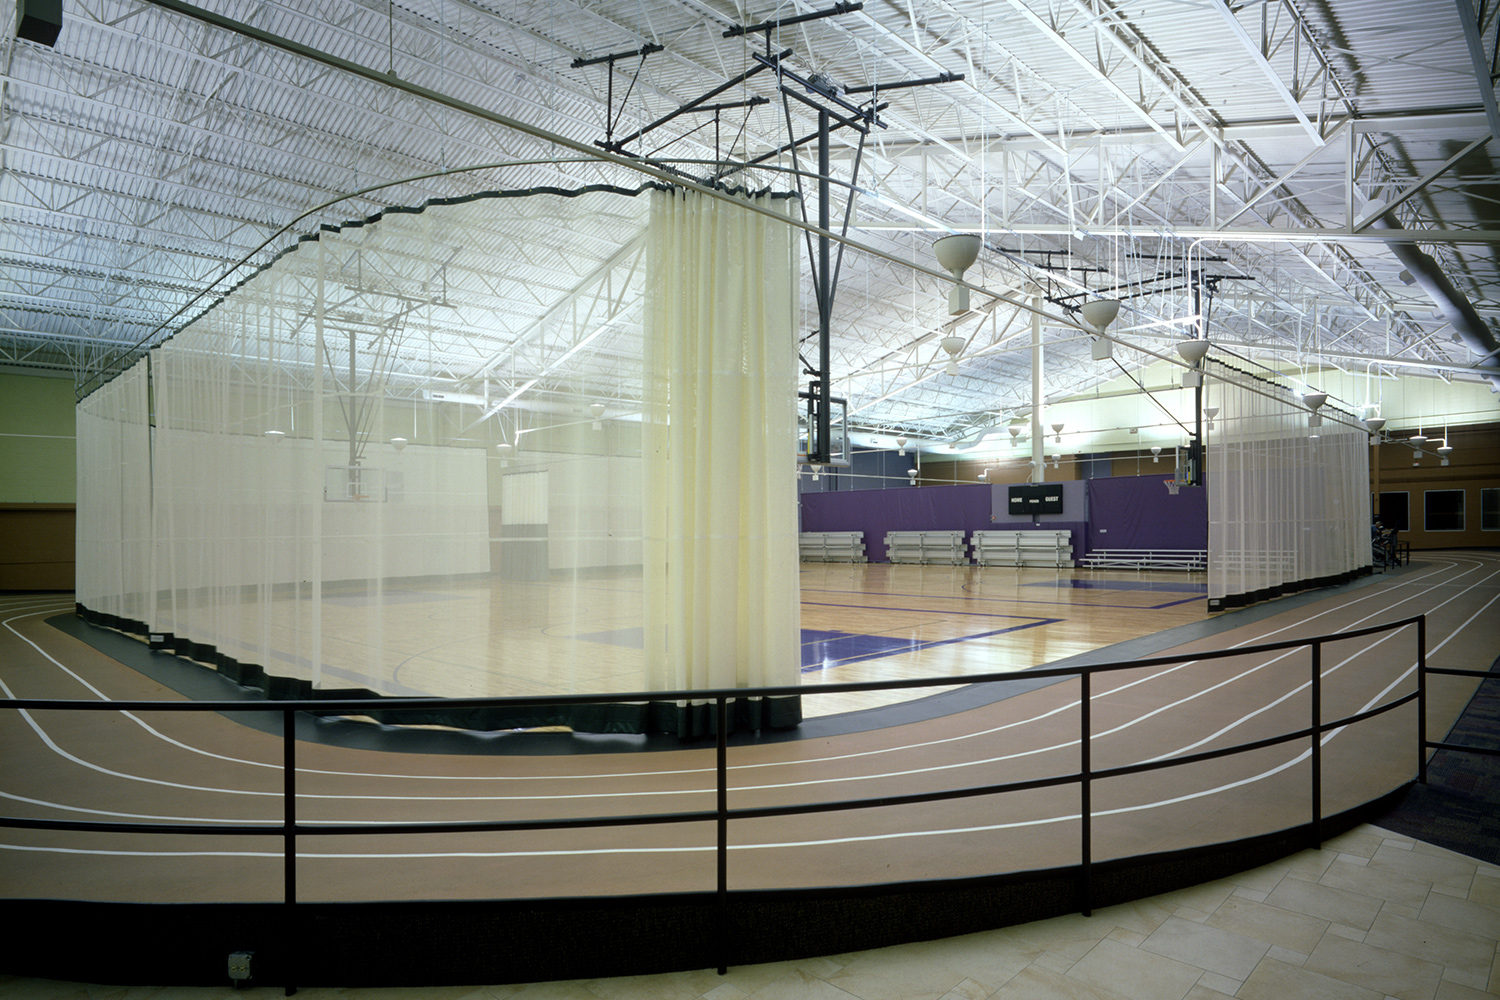 Deerfield Park District Sachs Recreation Center track and basketball court